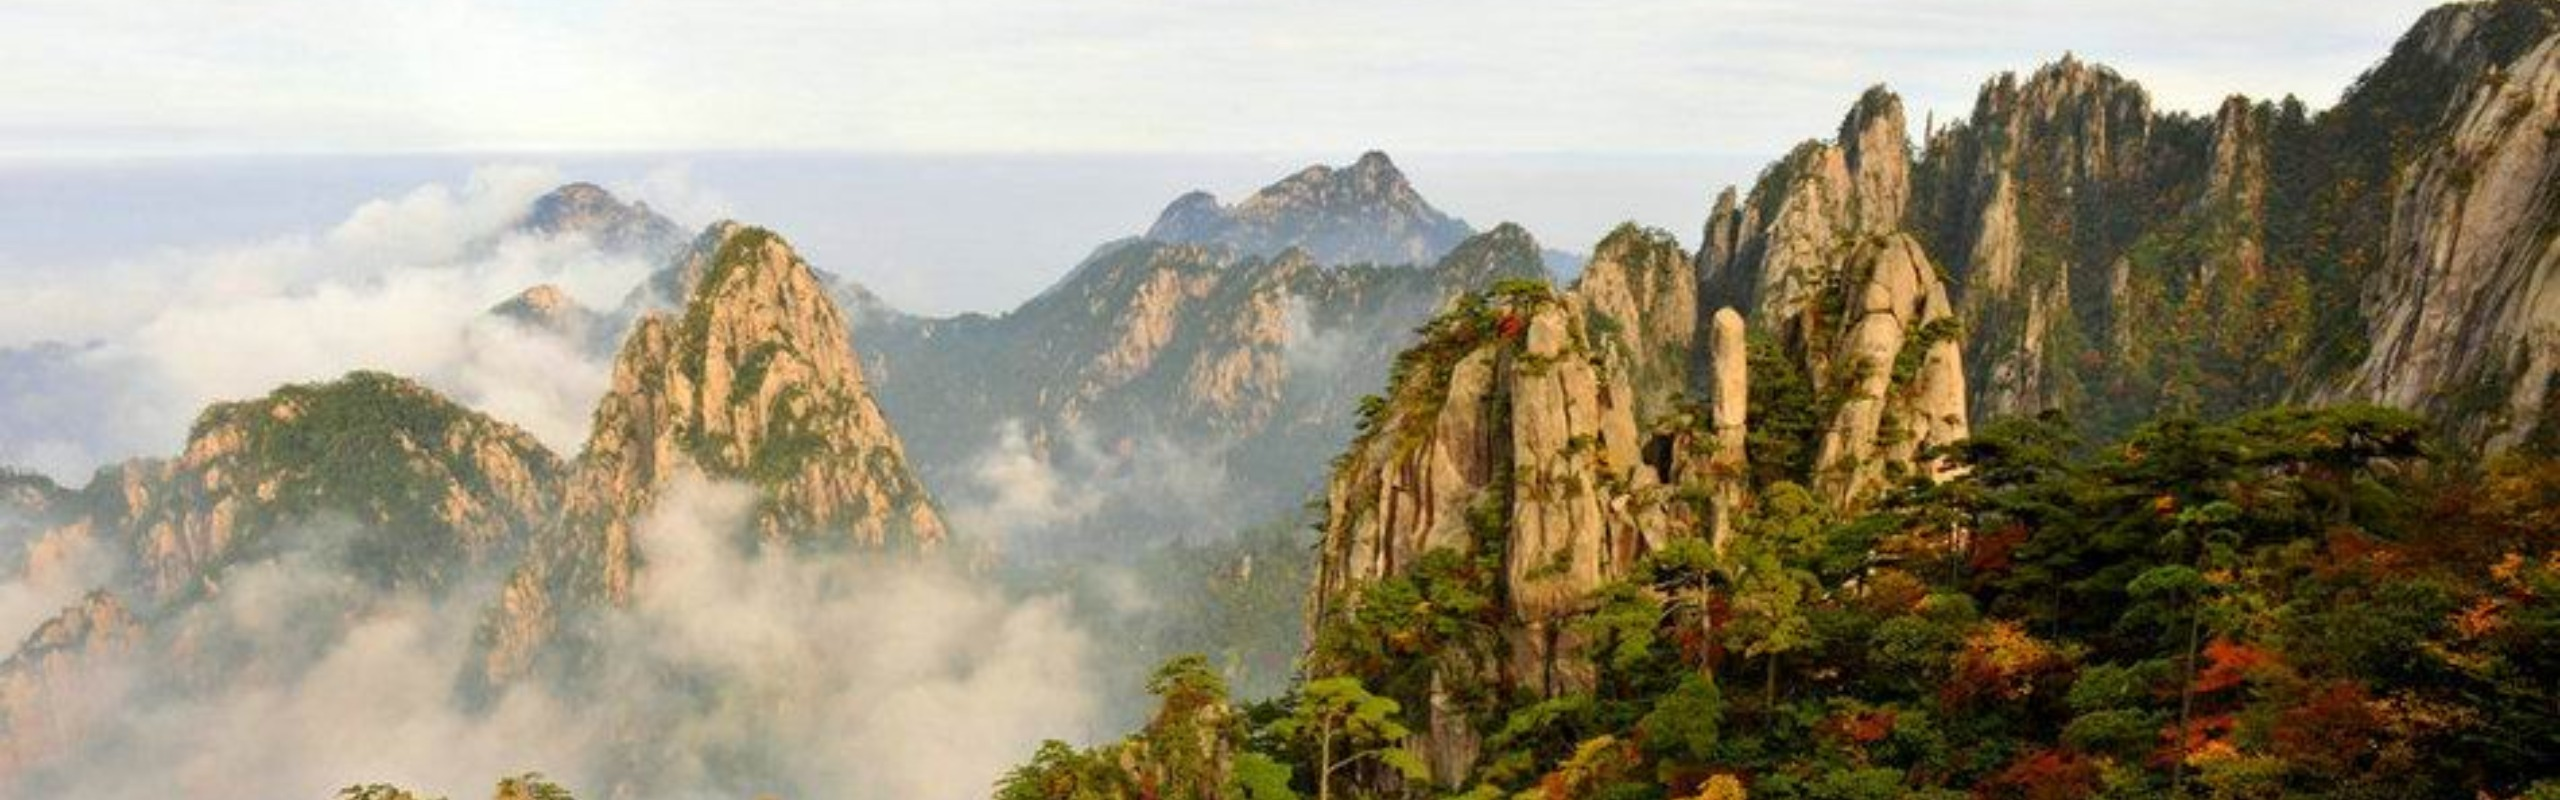 9-Day Guilin and Huangshan Photography Tour